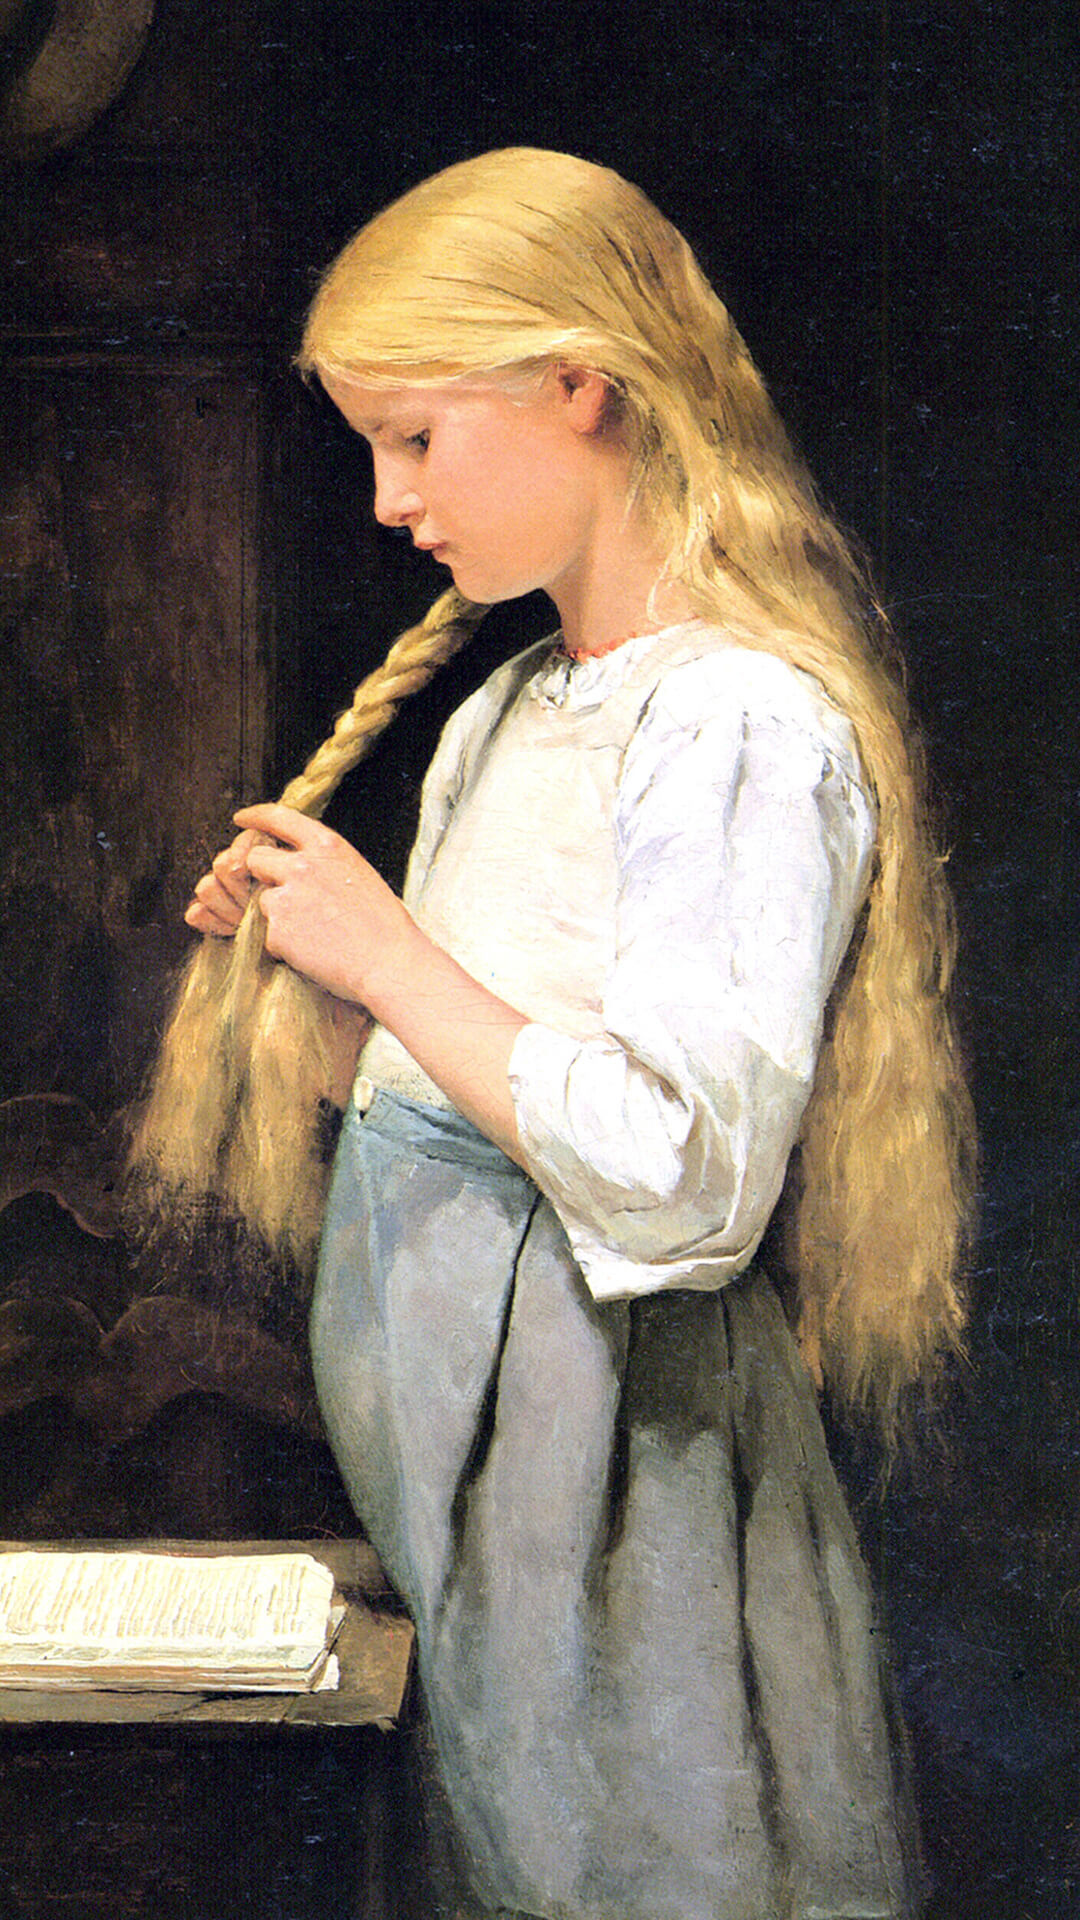 アルベール・アンカー Albert-Anker / Girl Braiding Her Hair